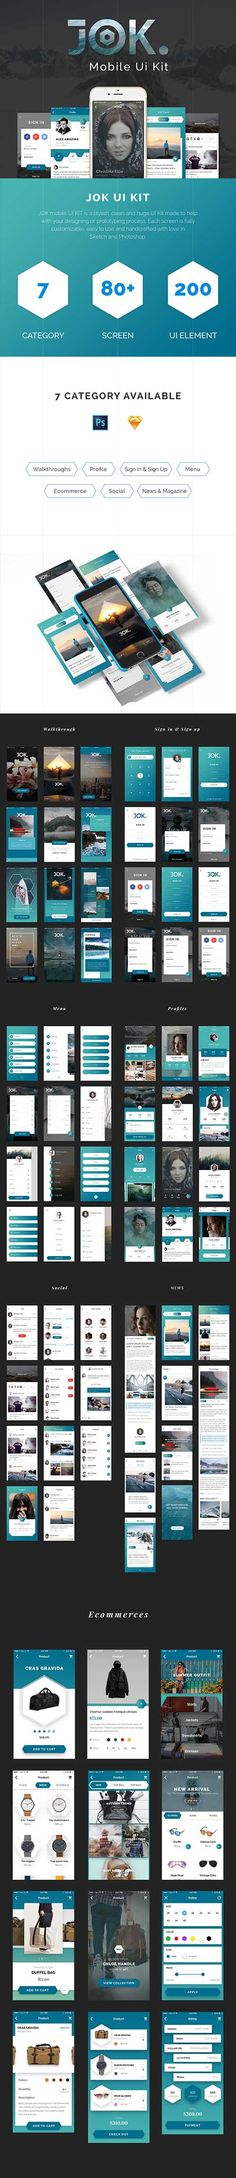 JOK Mobile UI Kit - Stylish & trendy iOS UI Kit for Sketch & Photoshop JOK mobile UI KIT is a stylish, clean and trendy UI Kit made to help with your designing or prototyping process. JOK i Sketch Photoshop, Ios Ui, Ui Elements, Ui Kit, Mobile Ui, In This Moment, Templates, Stylish, Easy